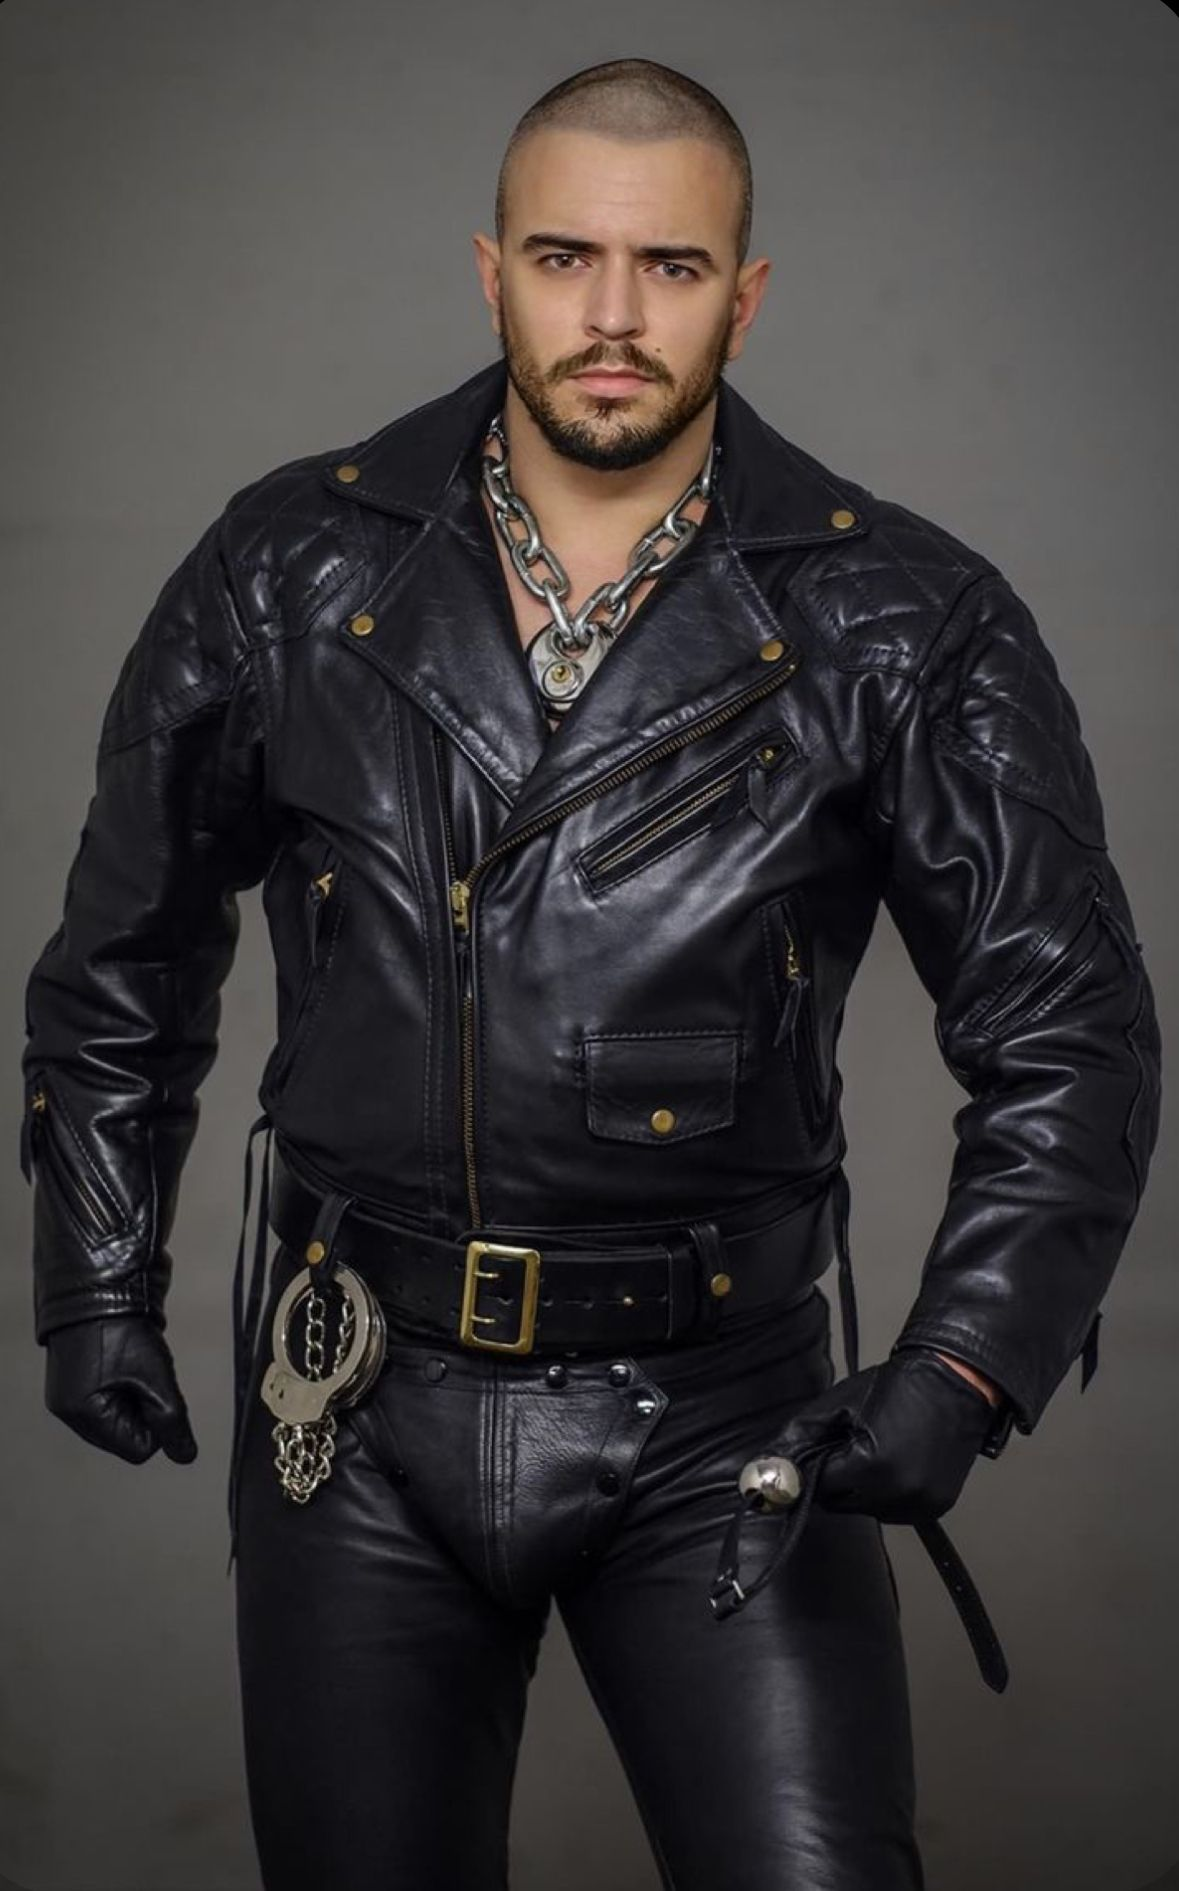 Pin By Jeff On Beard Balm Mens Leather Clothing Tight Leather Pants Leather Gear [ 1891 x 1179 Pixel ]